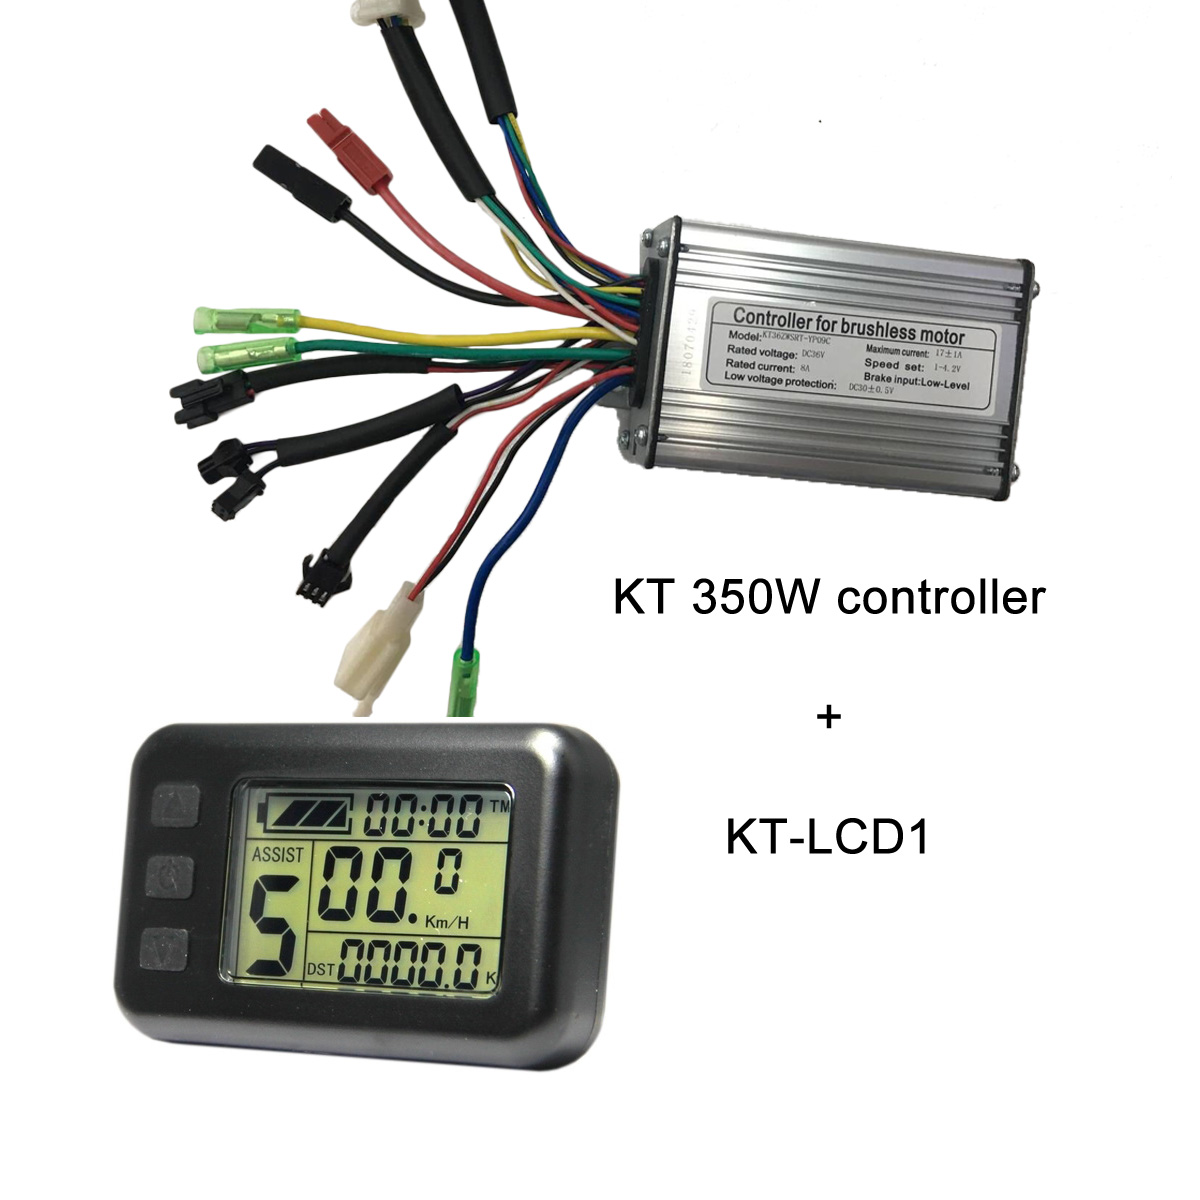 KT 350W controllers with KT-LCD1 electric bike display